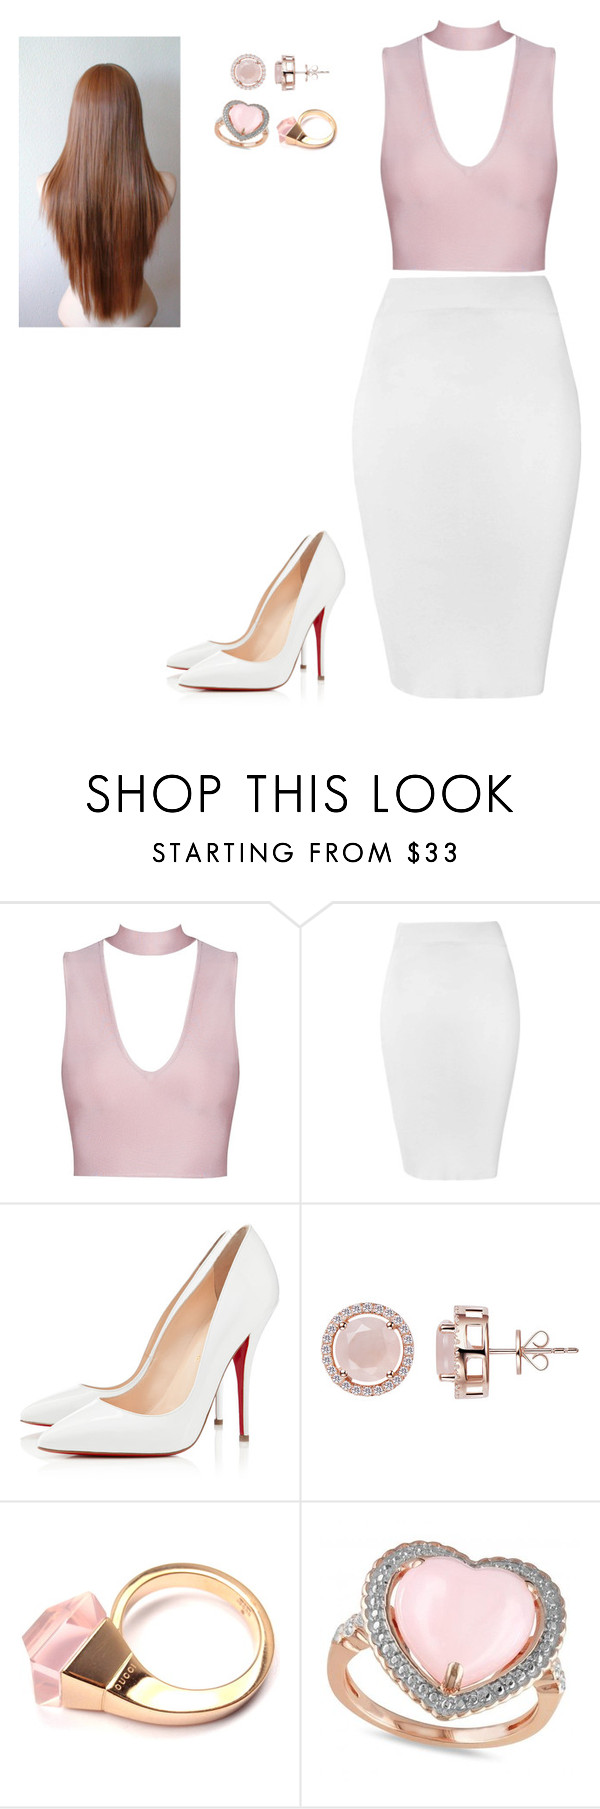 """Untitled #1011"" by maryleea ❤ liked on Polyvore featuring Glamorous, Christian Louboutin, H.AZEEM, Gucci and Allurez"